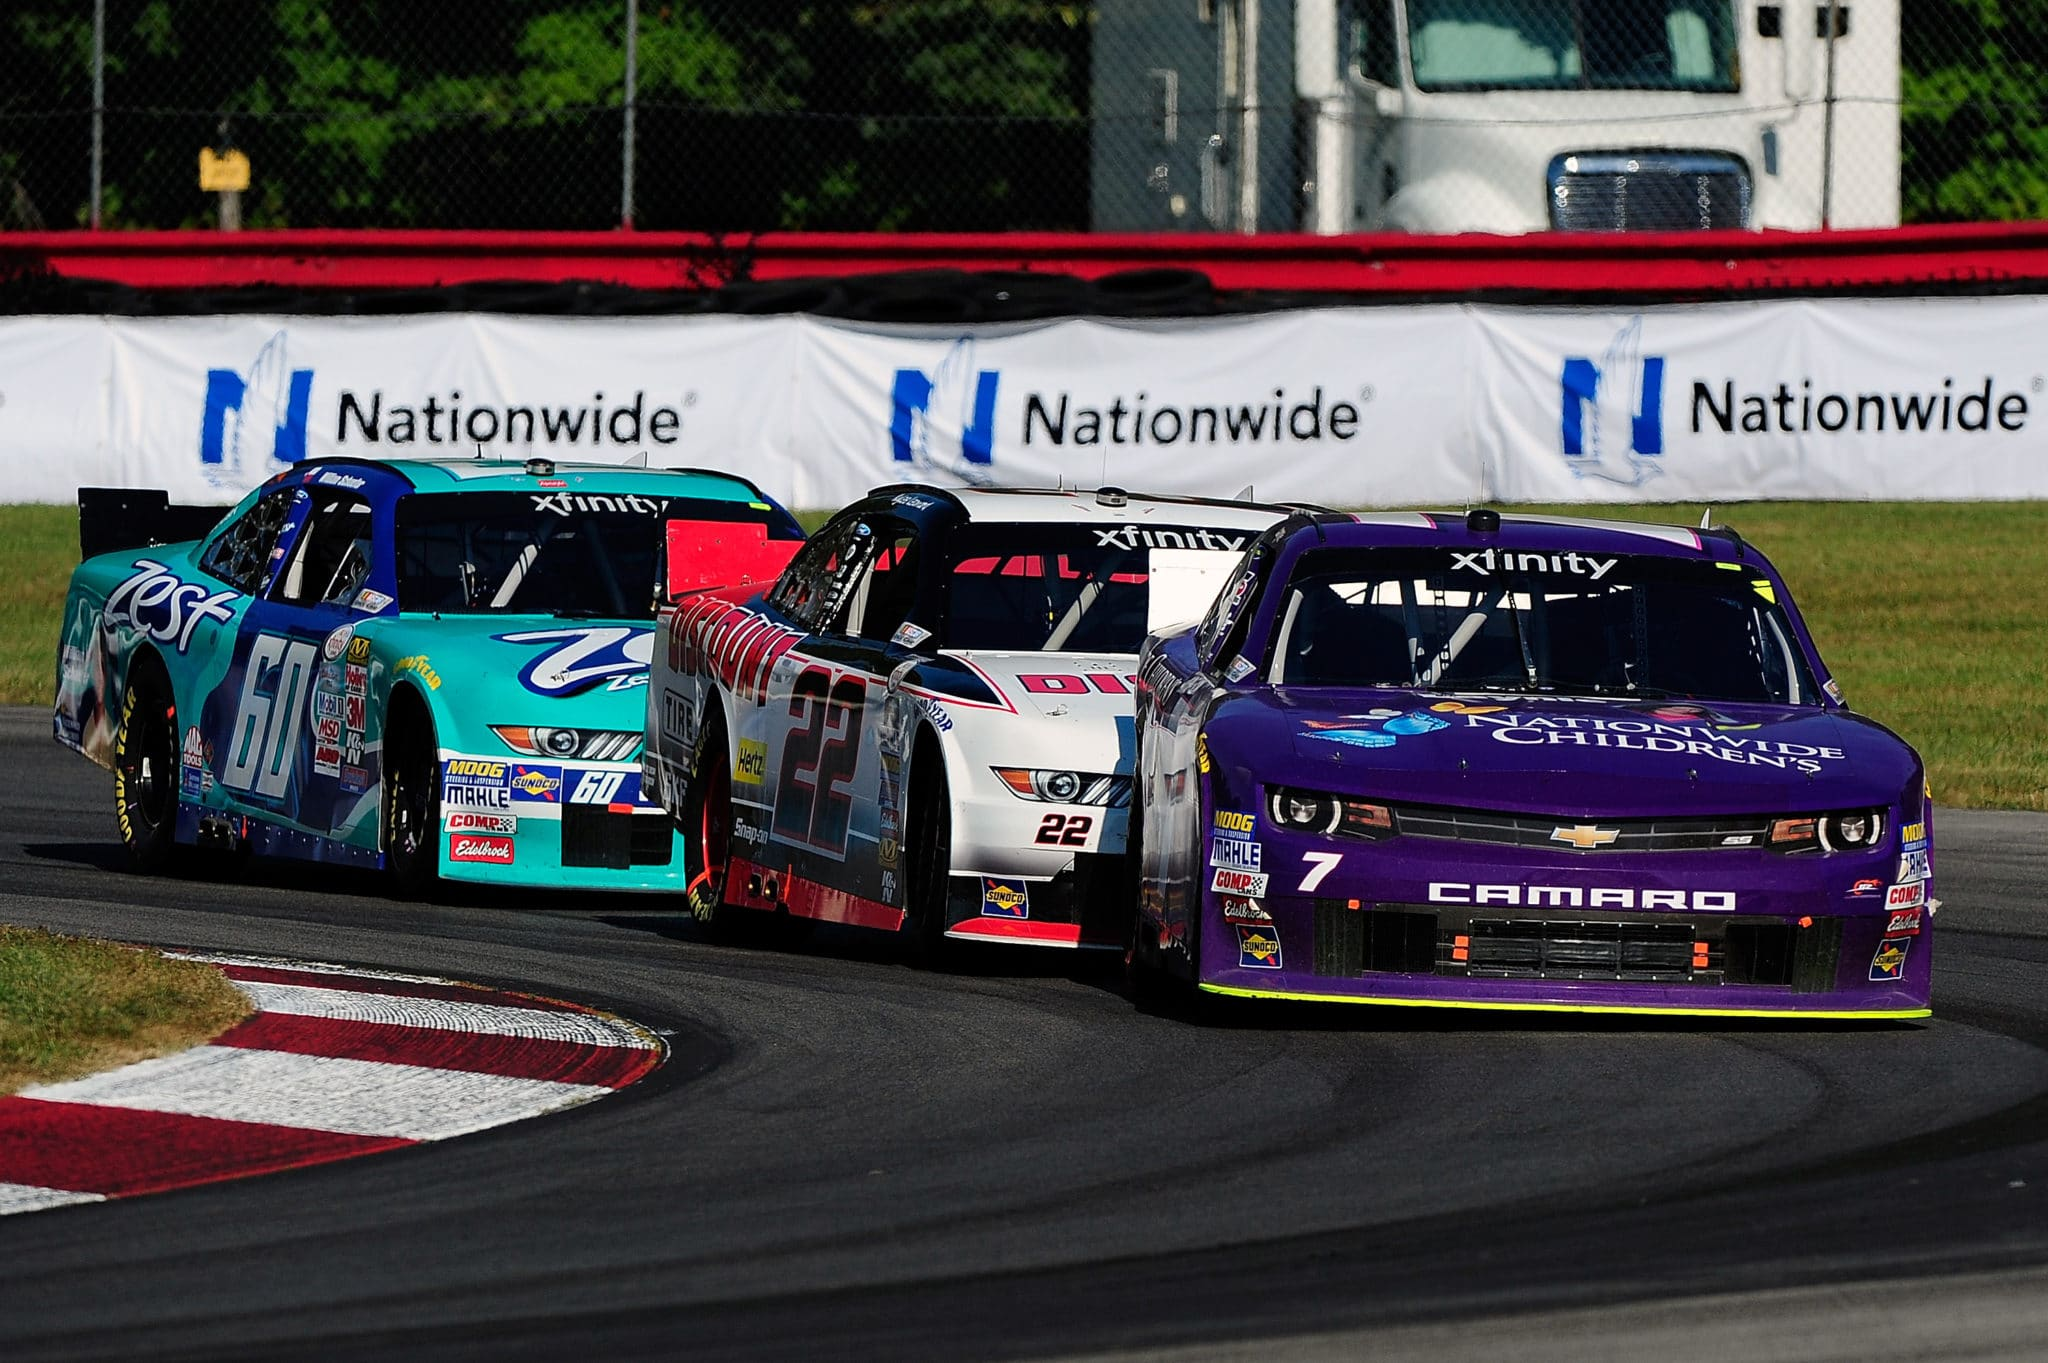 Regan Smith in front at Mid-Ohio in the XFINITY series